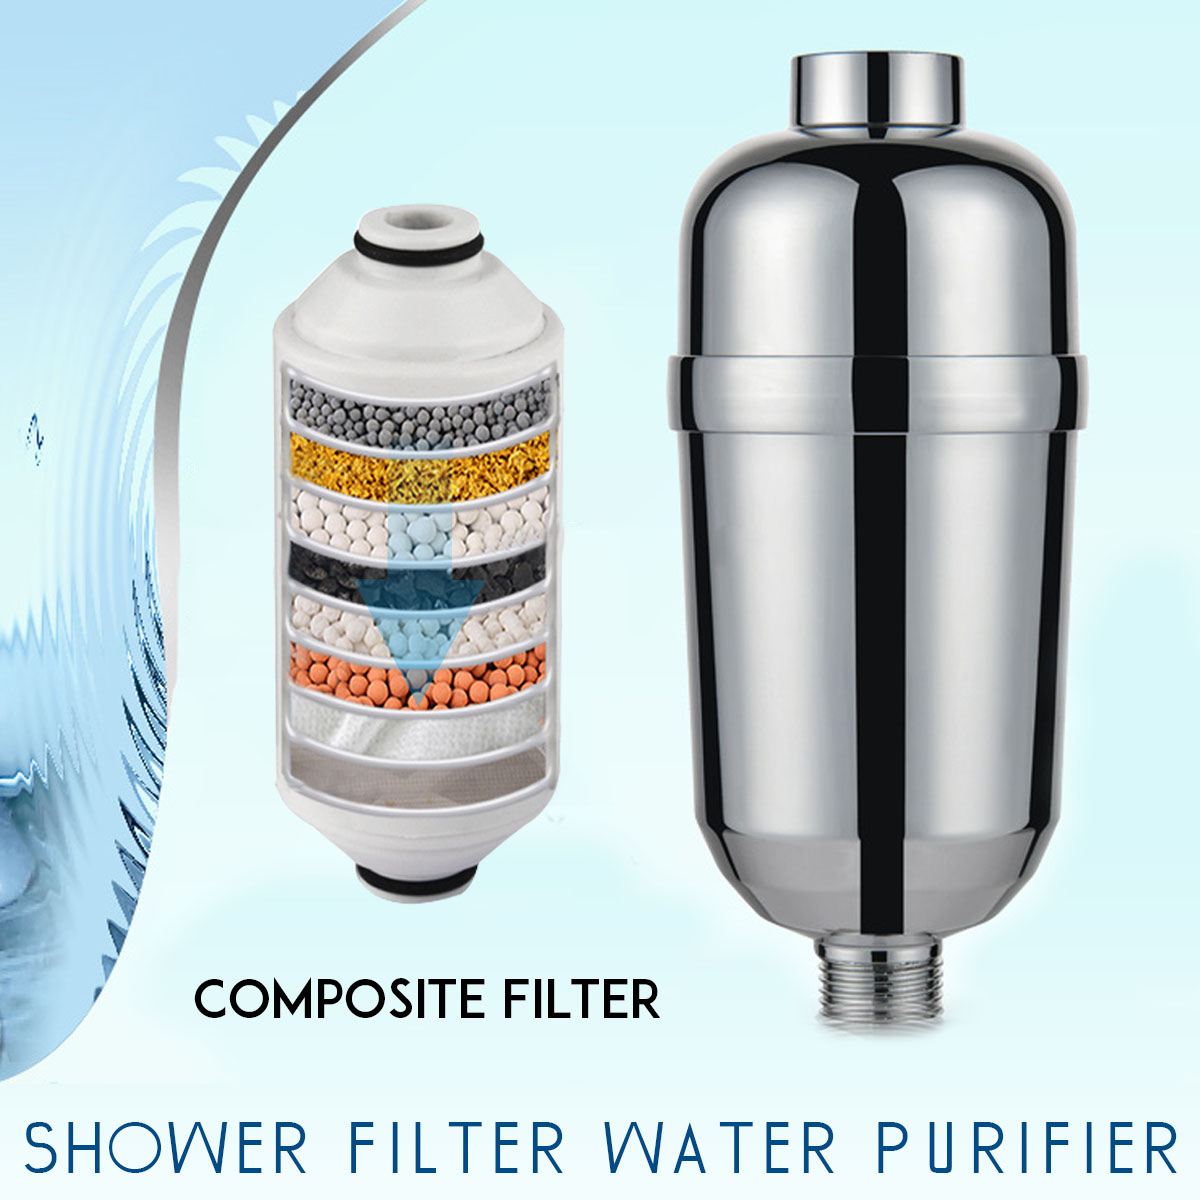 NEW Bathroom Shower Filter Bathing Water Filter Purifier Water Treatment Health Softener Chlorine Removal Water Purifier